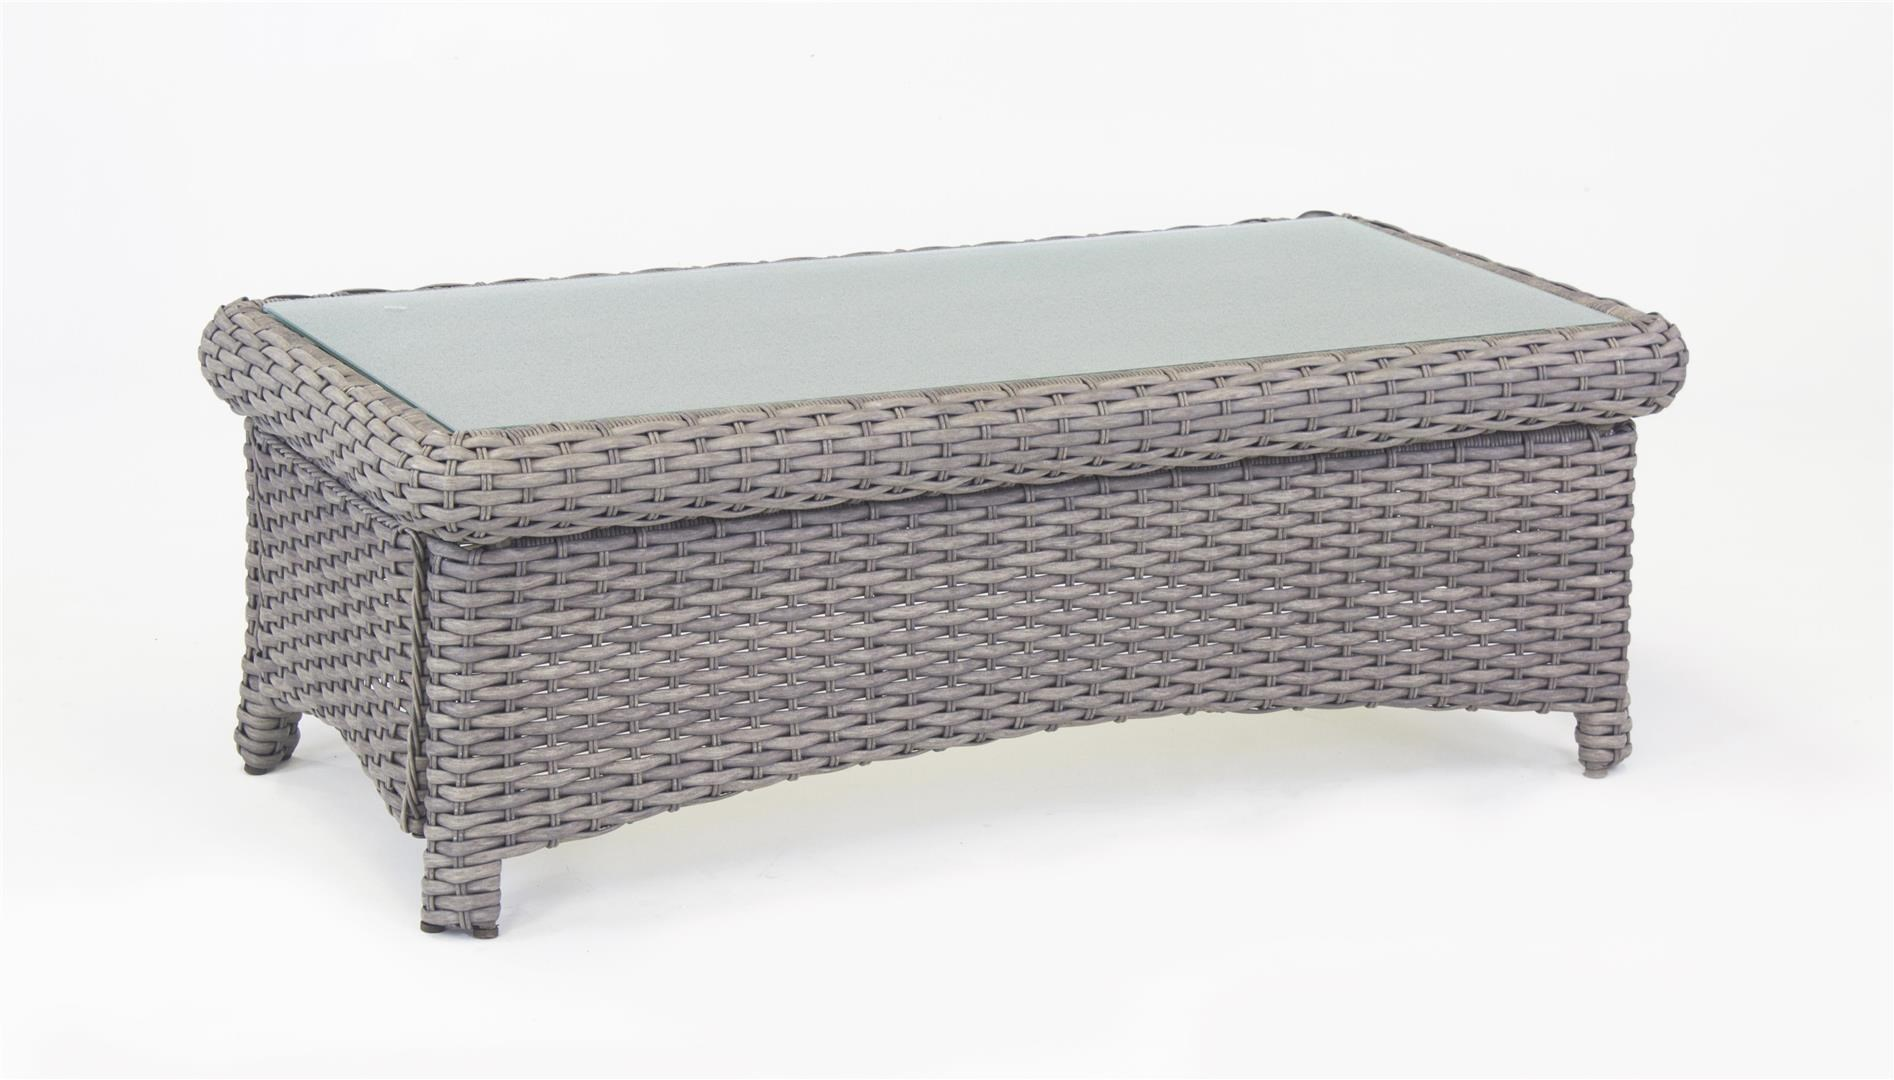 South Sea Rattan & Wicker Saint Tropez 2016 St Tropez Coffee Table - Item Number: PDQ-79344-STN